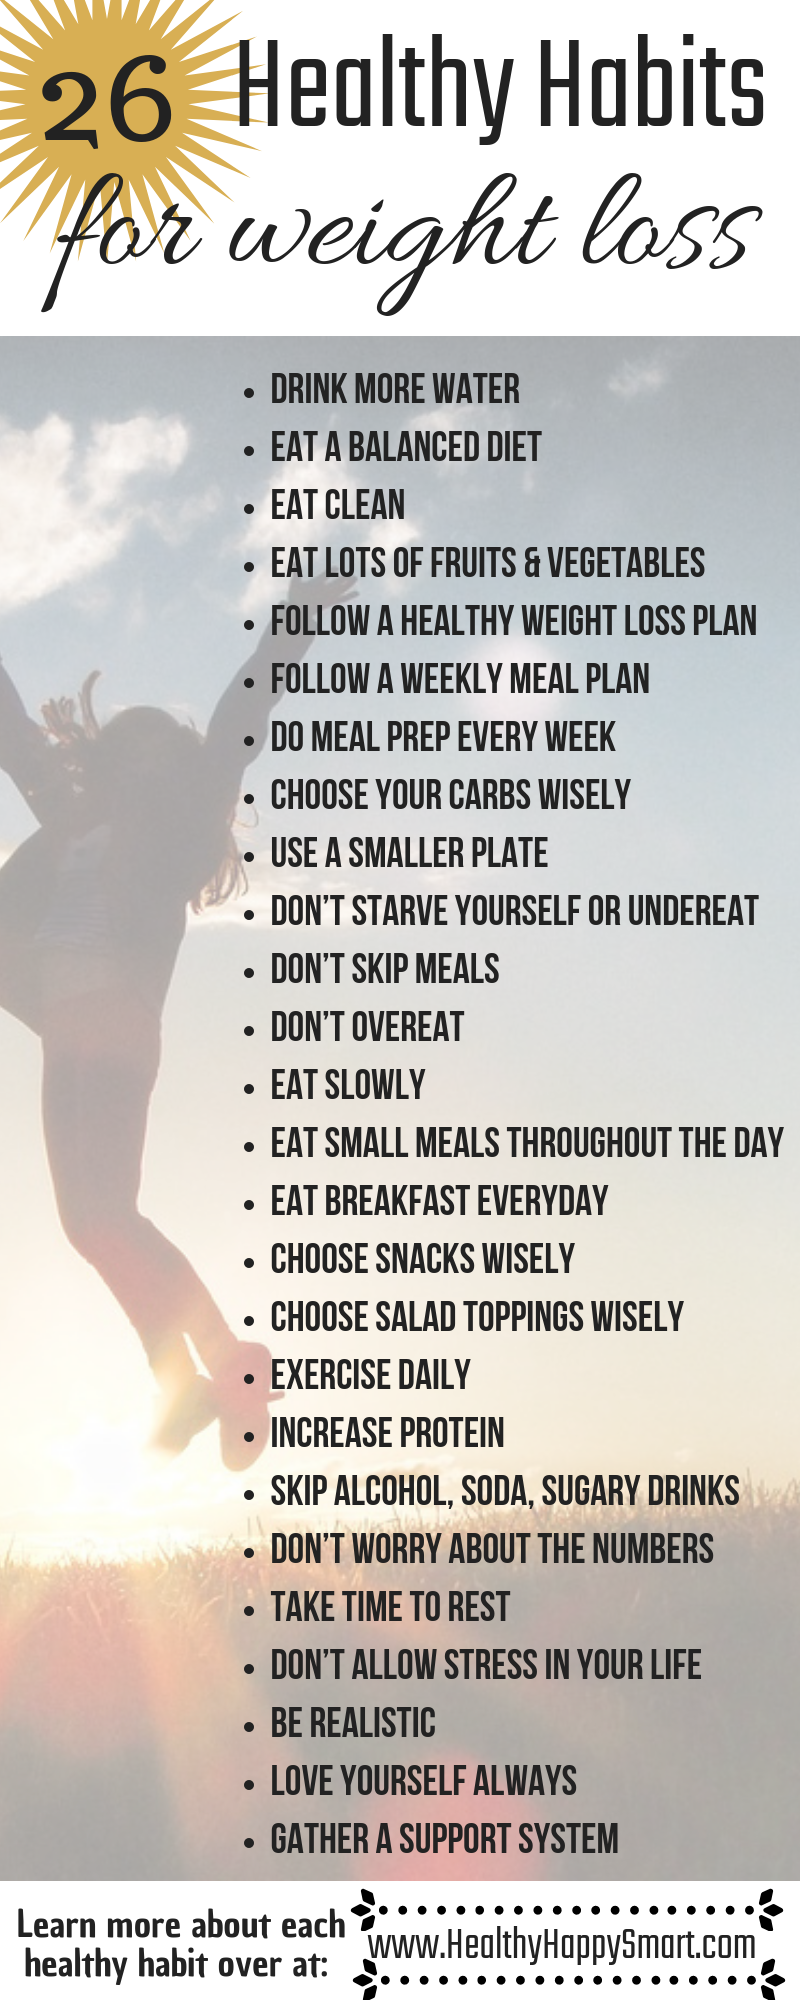 Lose Weight Naturally • 26 Healthy Habits Lose weight naturally with these 26 healthy habits -